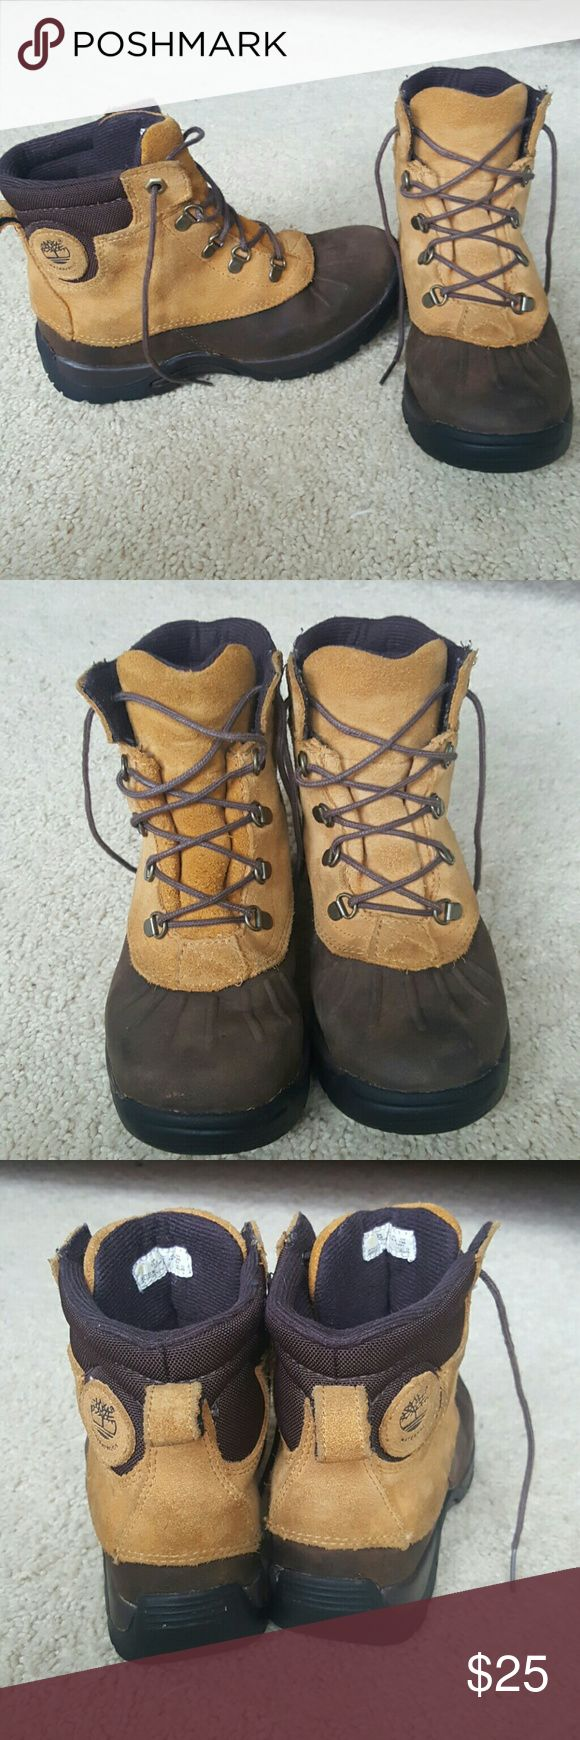 Boys timberland boots Boys timberland boots, great condition! Leather. Timberland  Shoes Boots